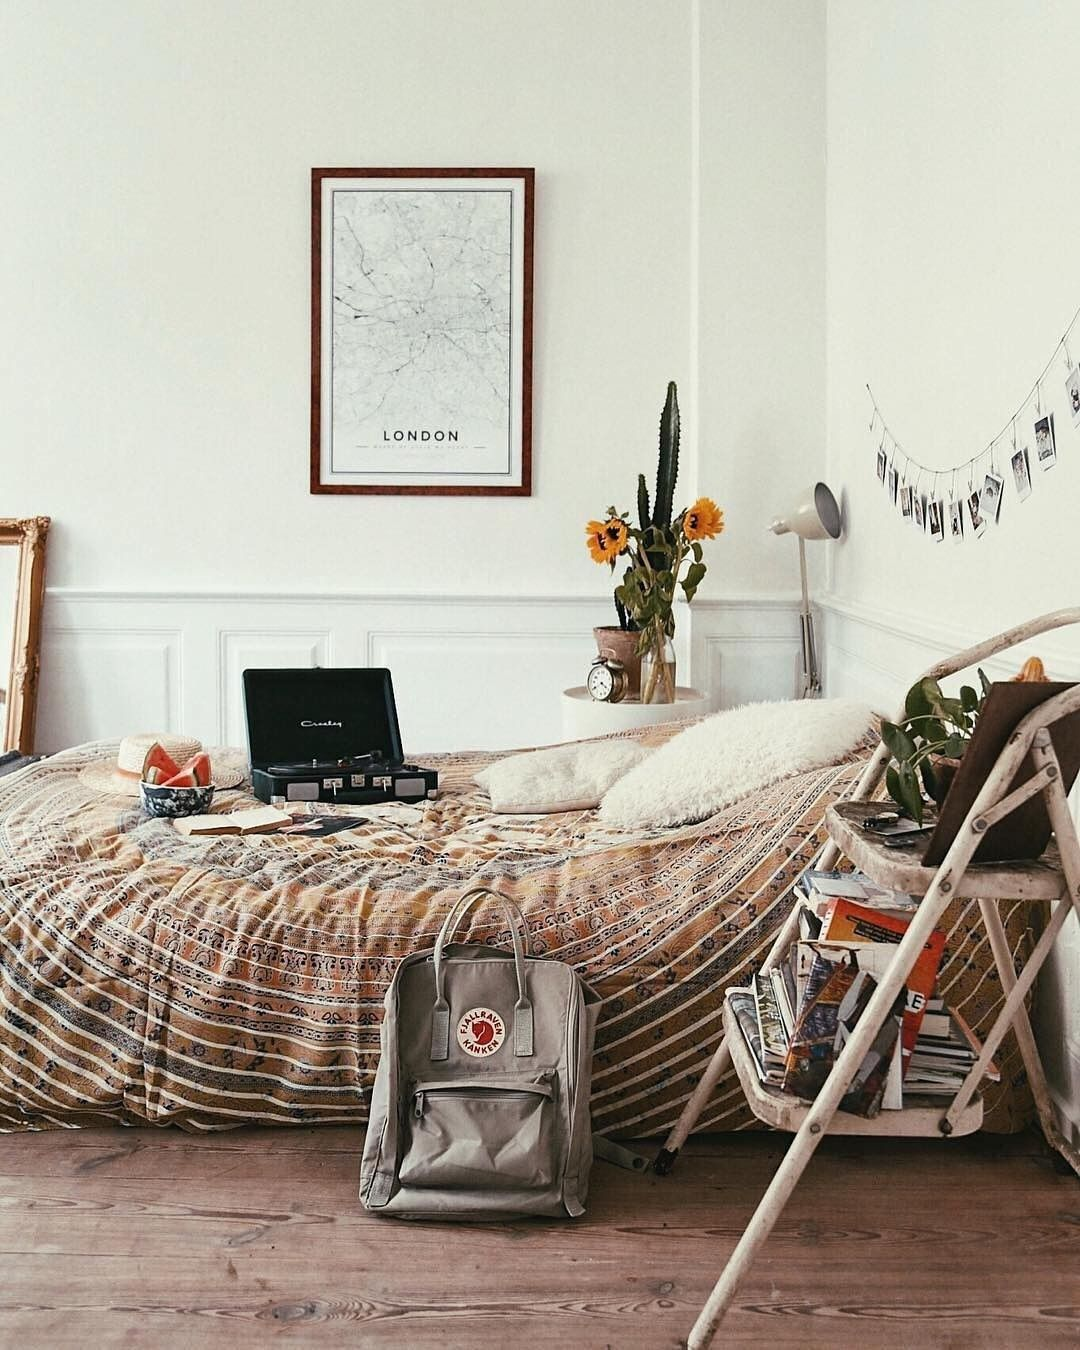 Bedroom Ideas Urban Outfitters 146 4k Likes 251 Comments Urban Outfitters